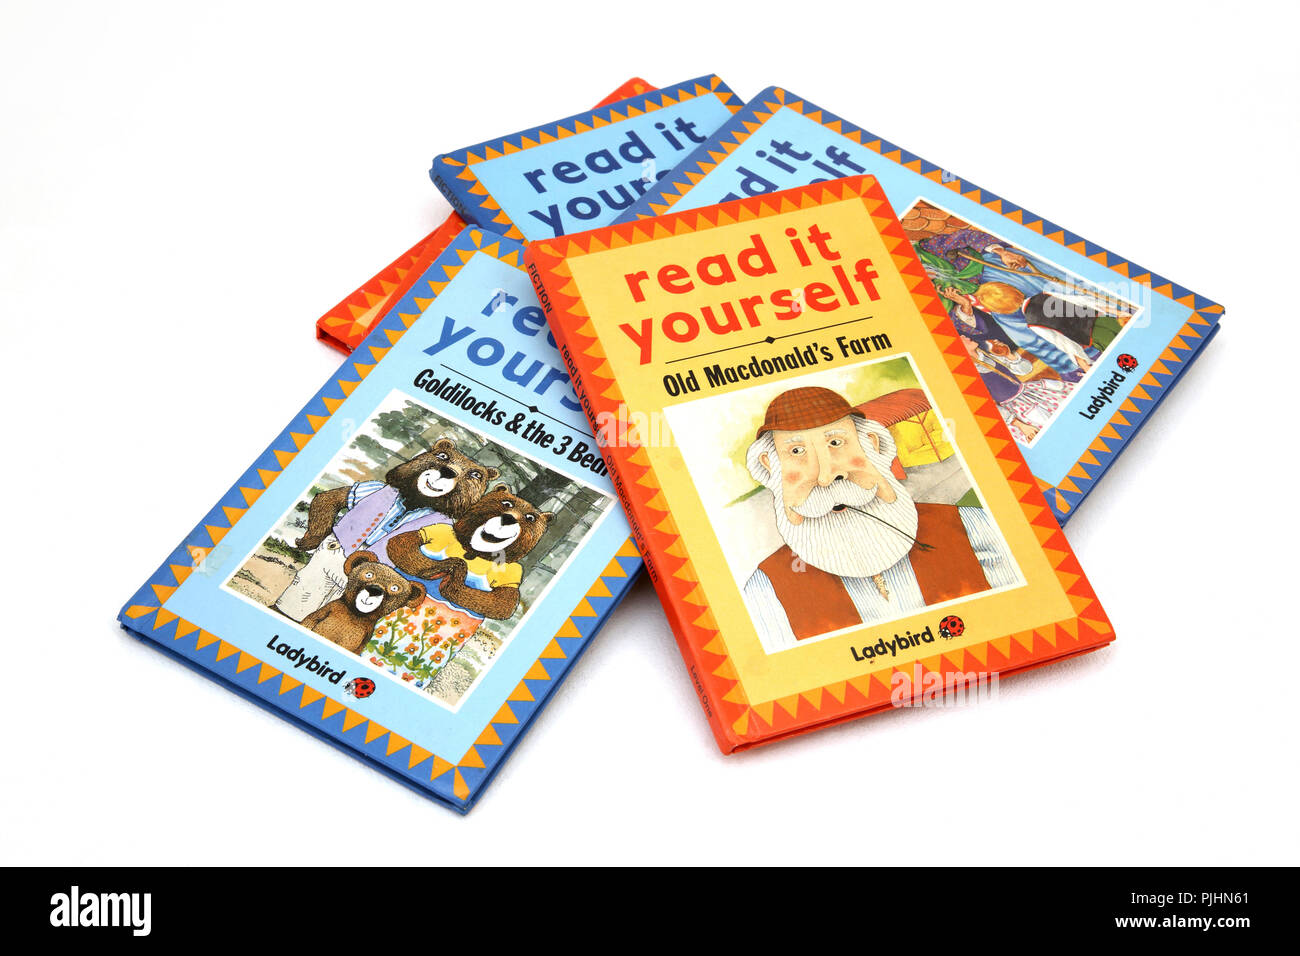 A Pile of Ladybird Read It Yourself Books - Stock Image